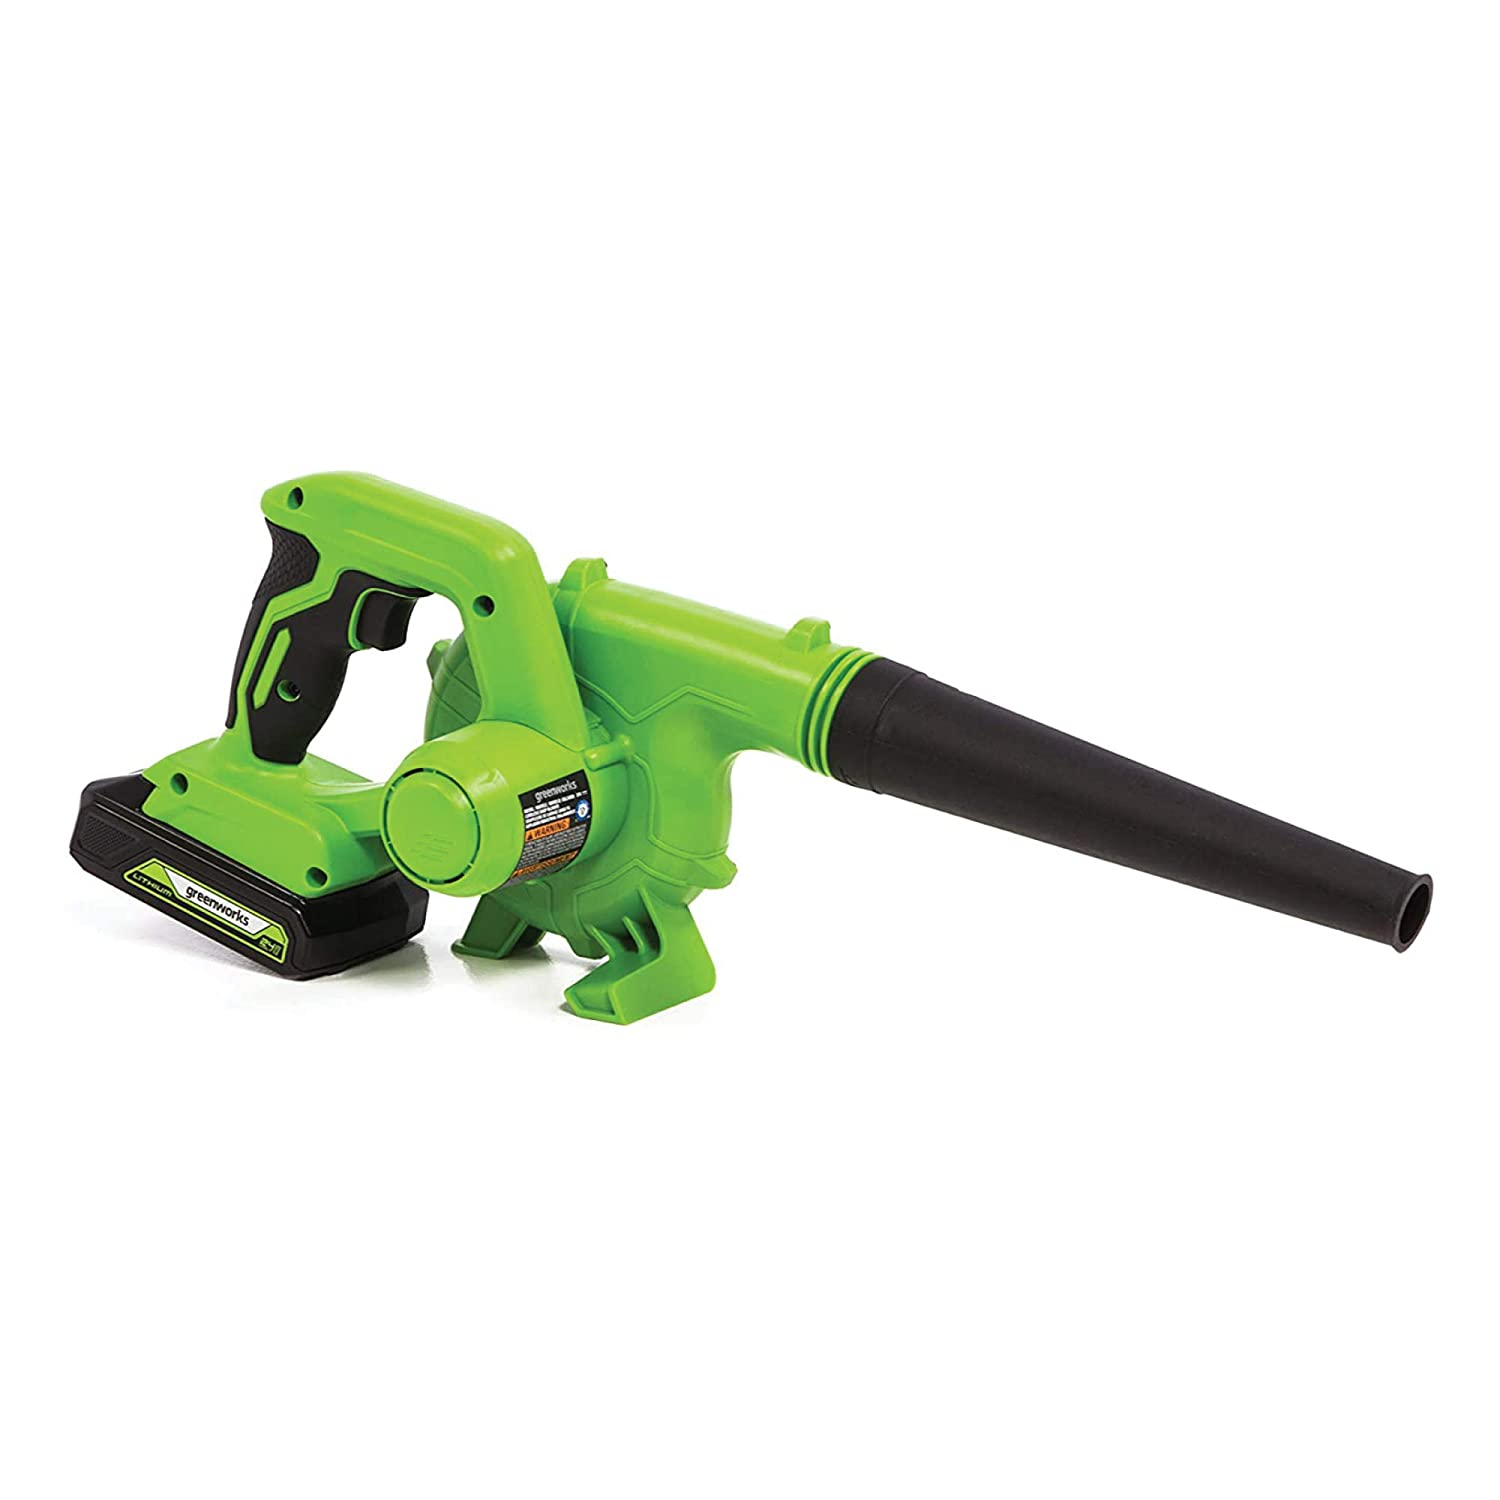 Green 2Ah Battery and Charger Greenworks SBL24B211 Blower